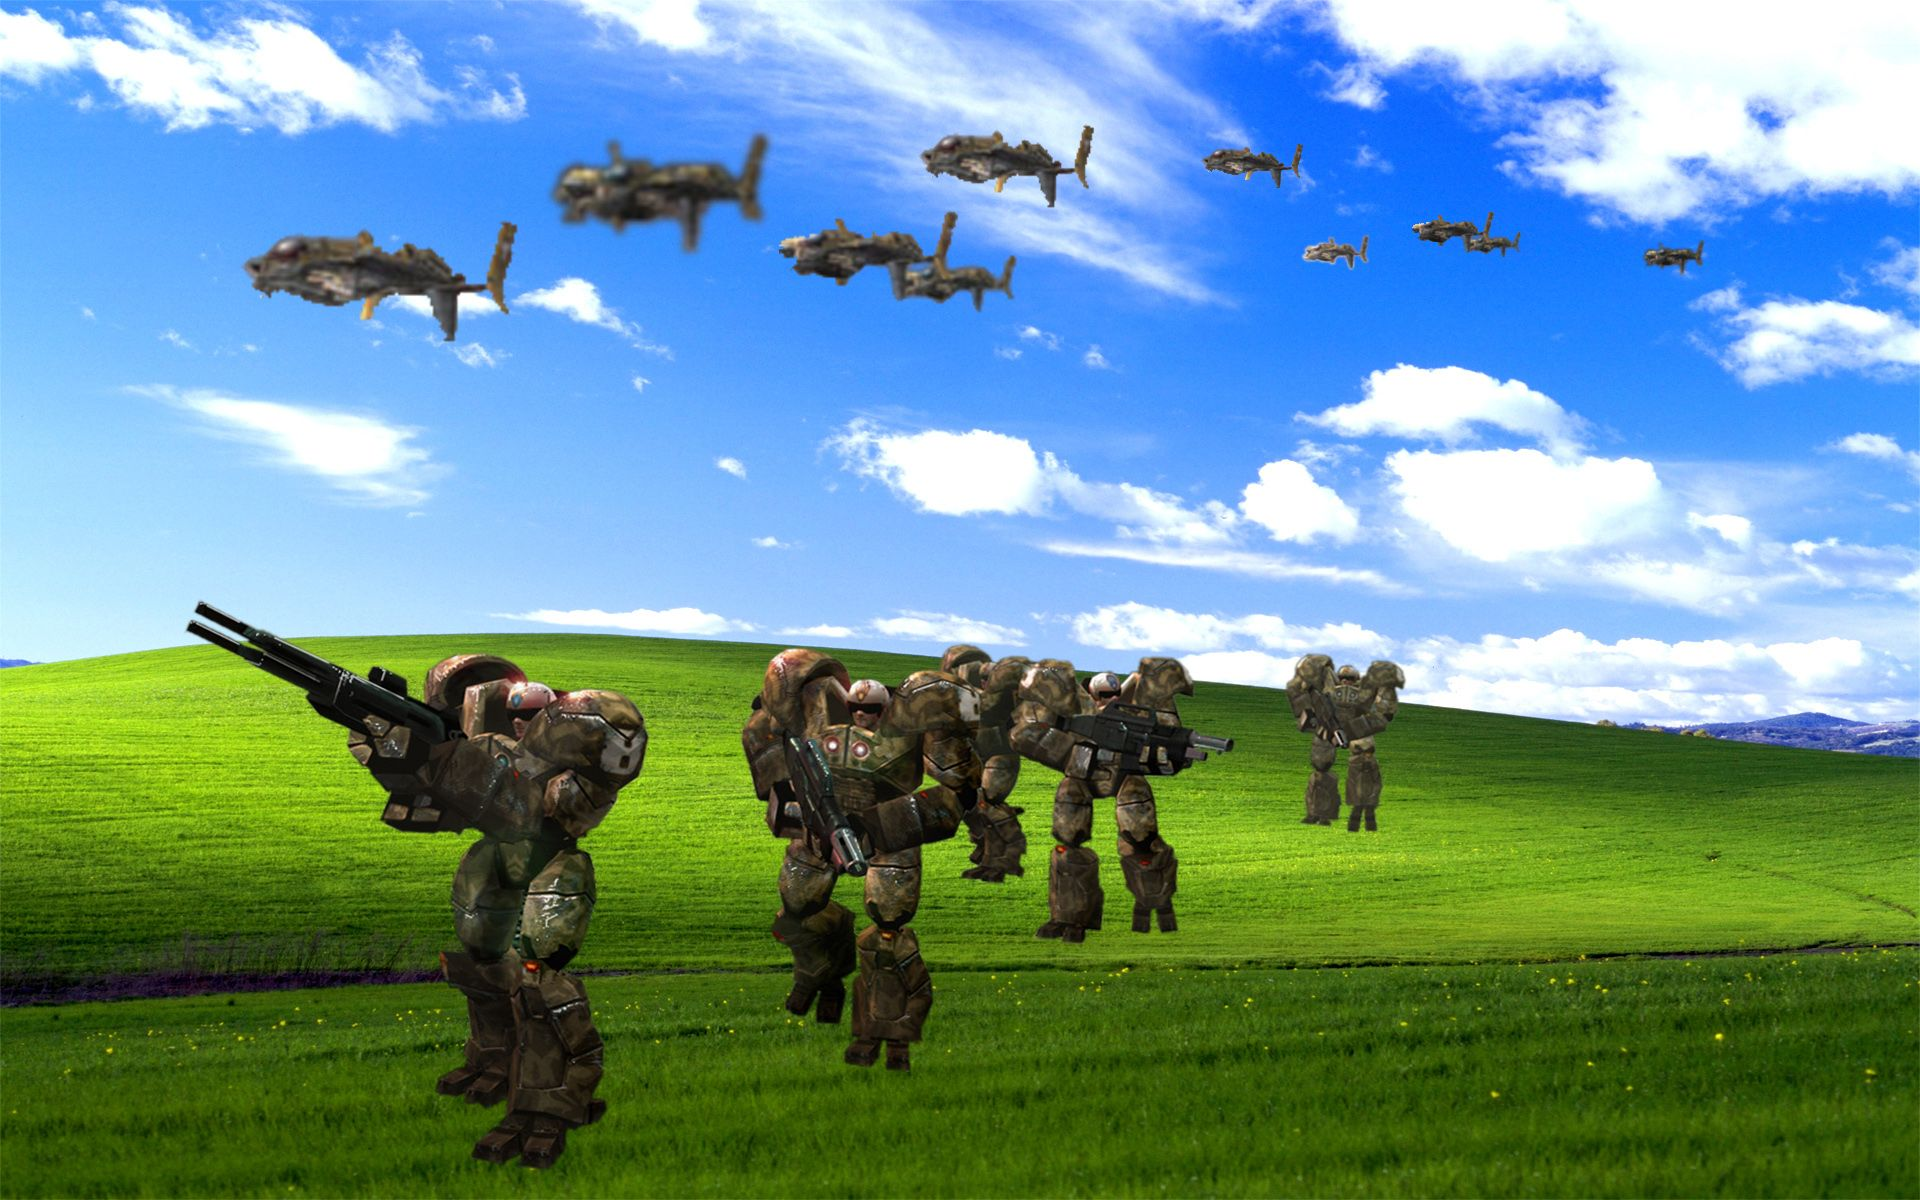 Windows Xp Bliss Wallpaper Image Gallery Know Your Meme Hd